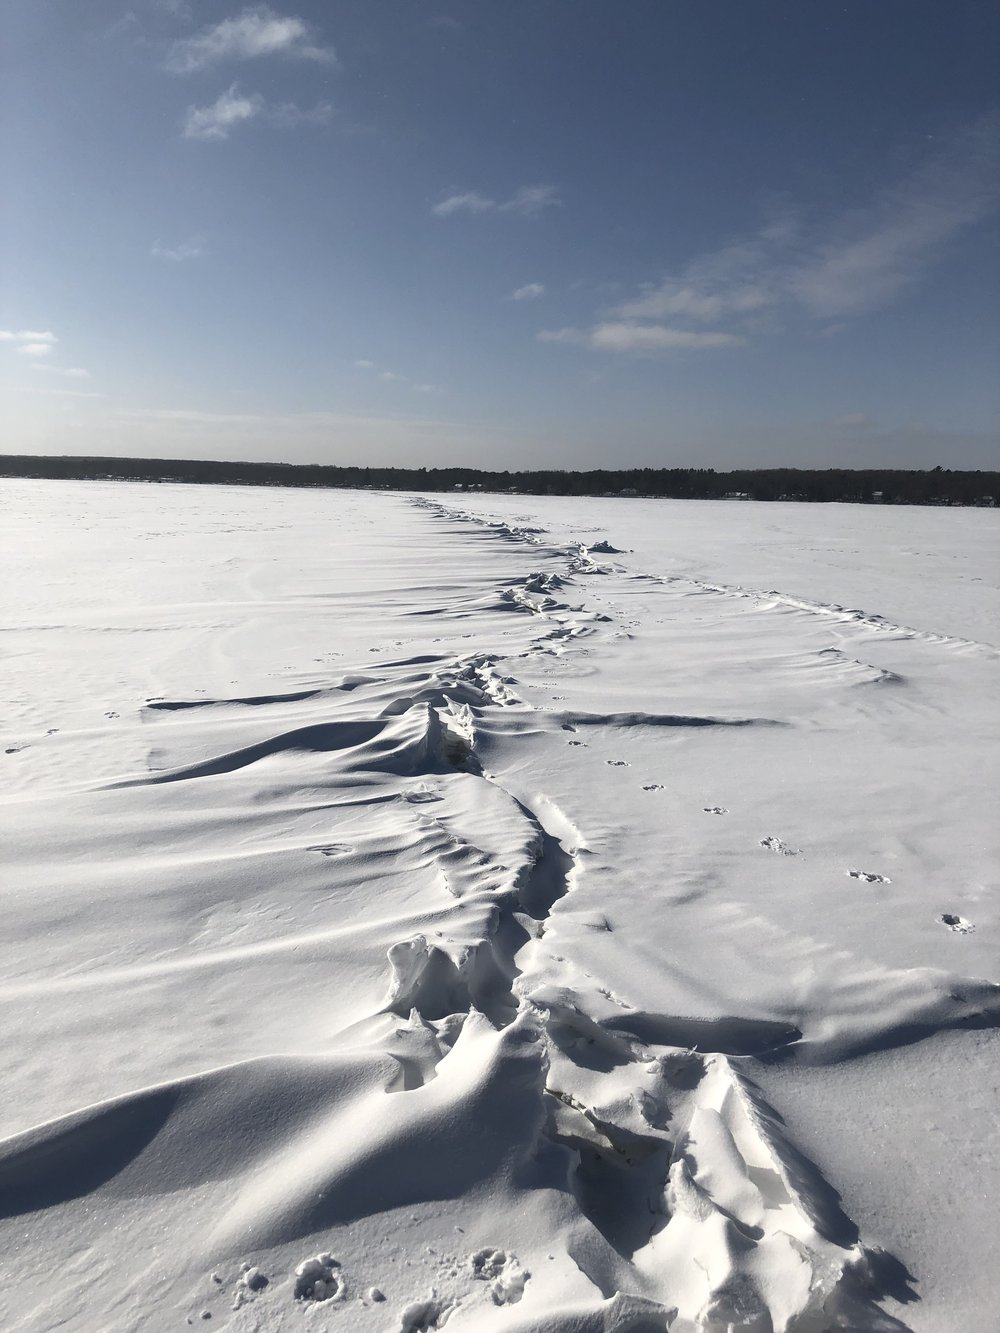 Like tectonic plates, two massive ice sheets from the opposing lobes of the lake meet and crumple across the entire breadth of the lake.